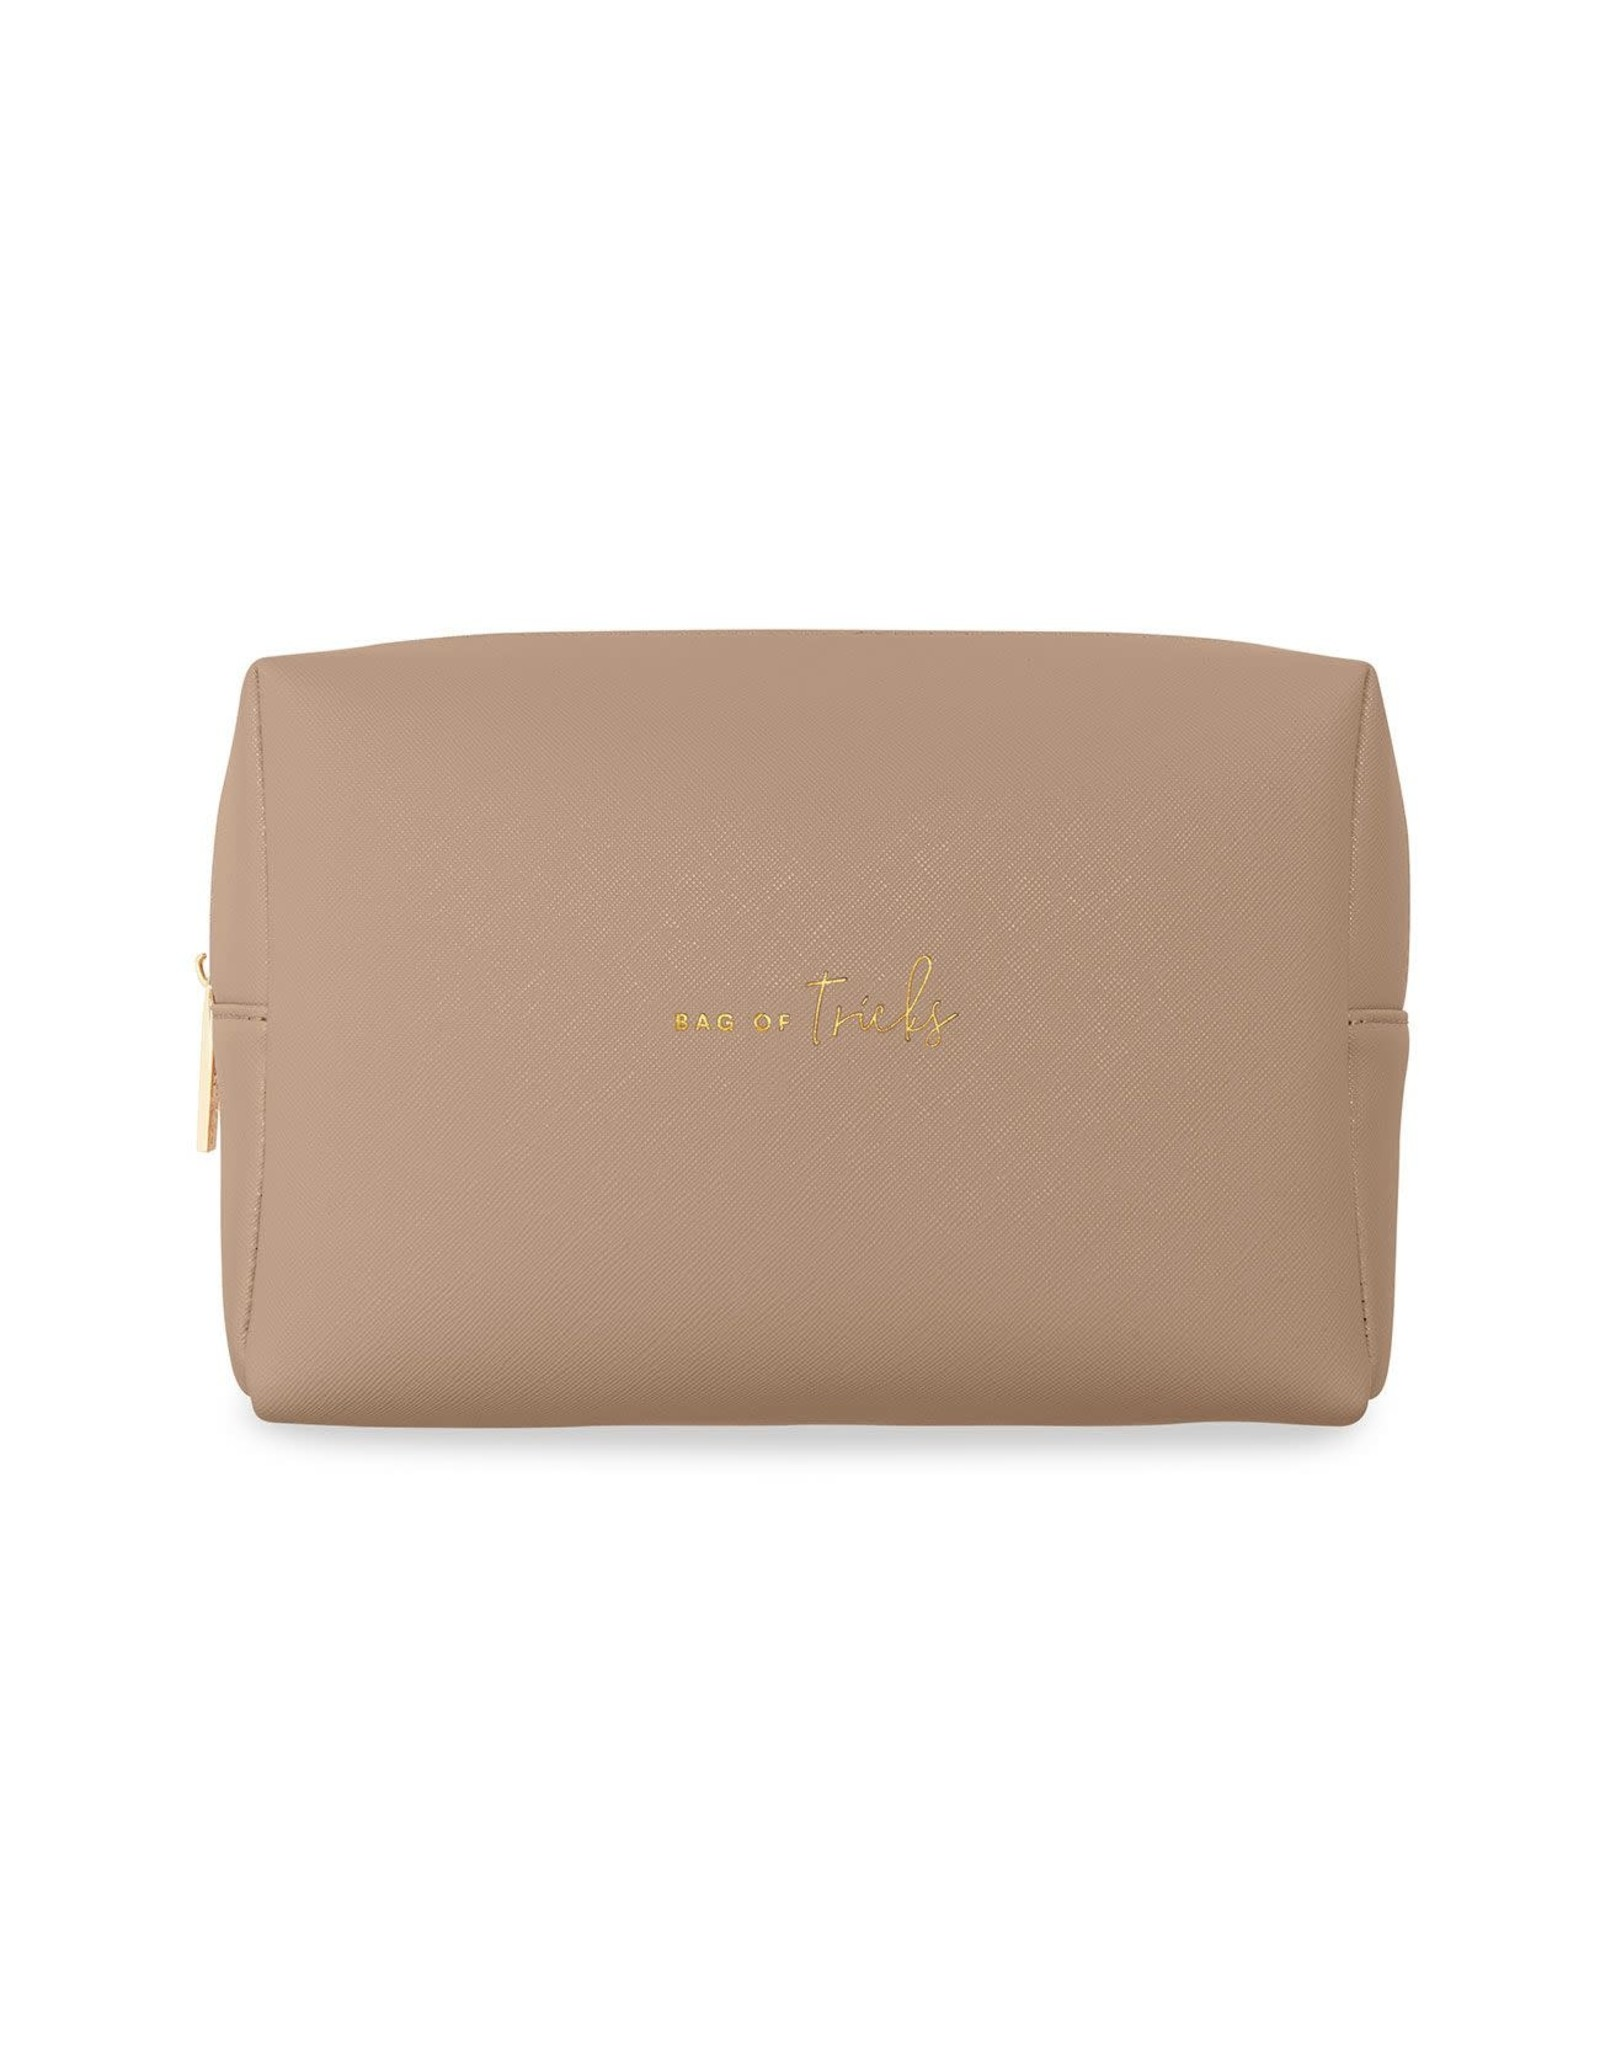 Katie Loxton Toilettas - Bag of Tricks - Taupe